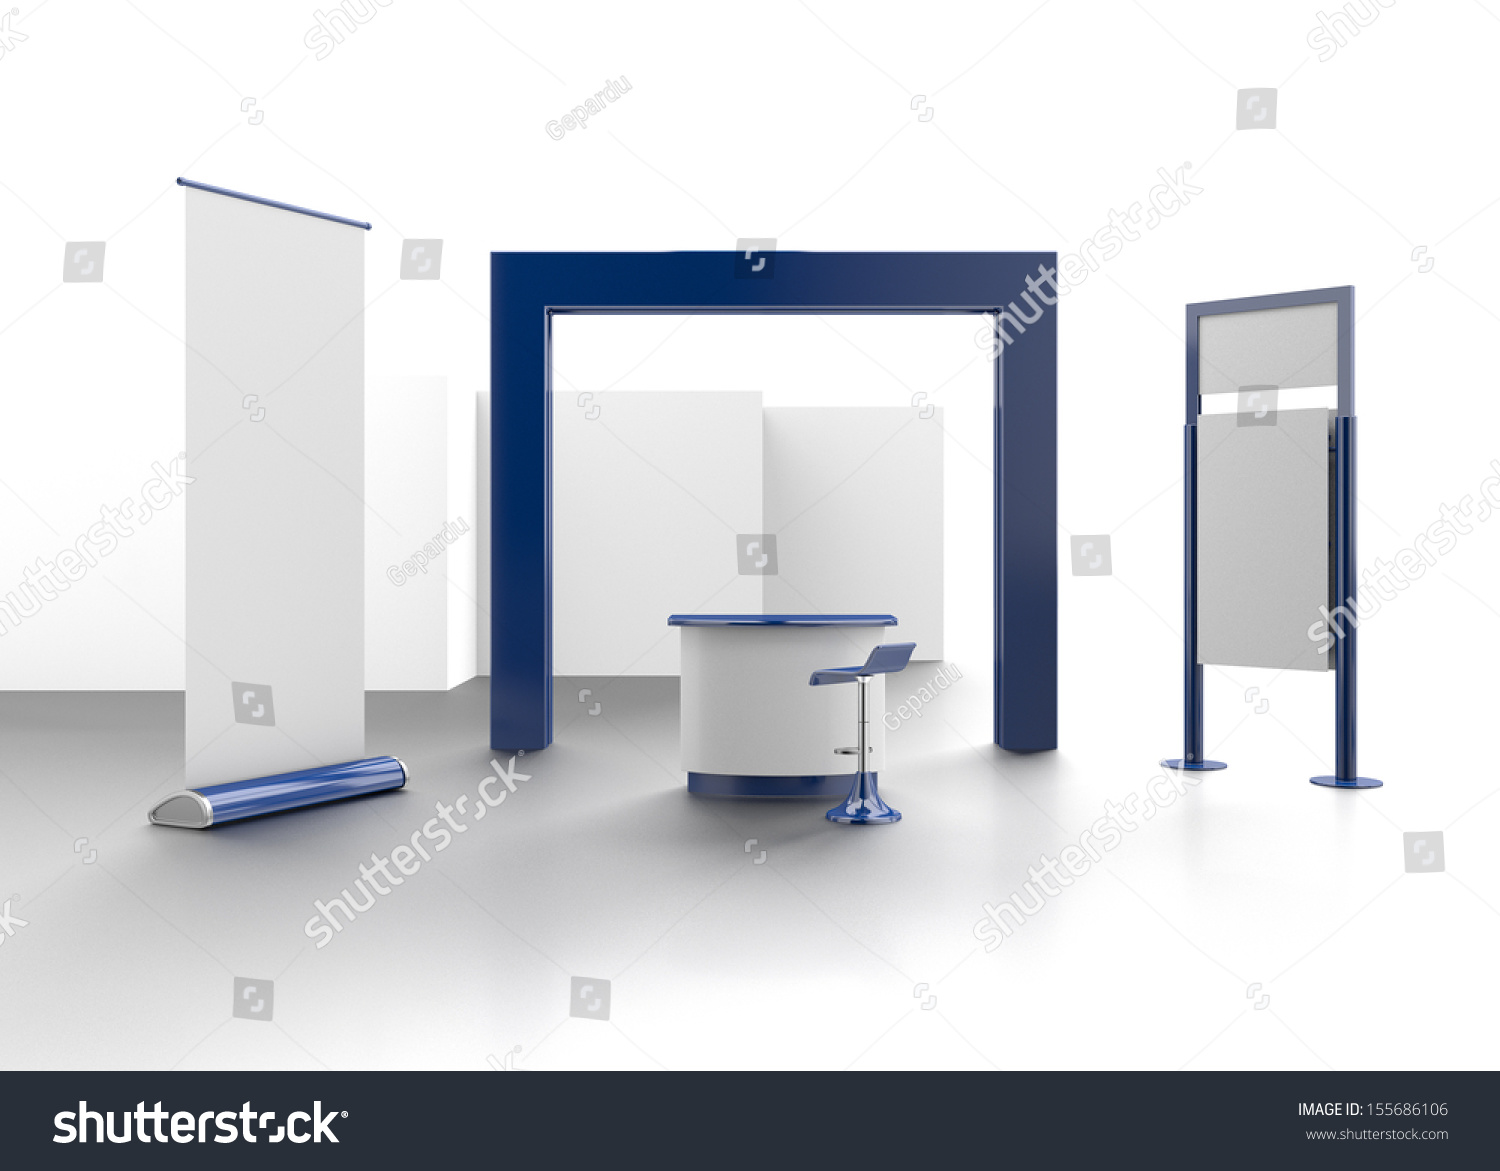 Exhibition Stall Rendering : Trade exhibition booth stall d render stock illustration